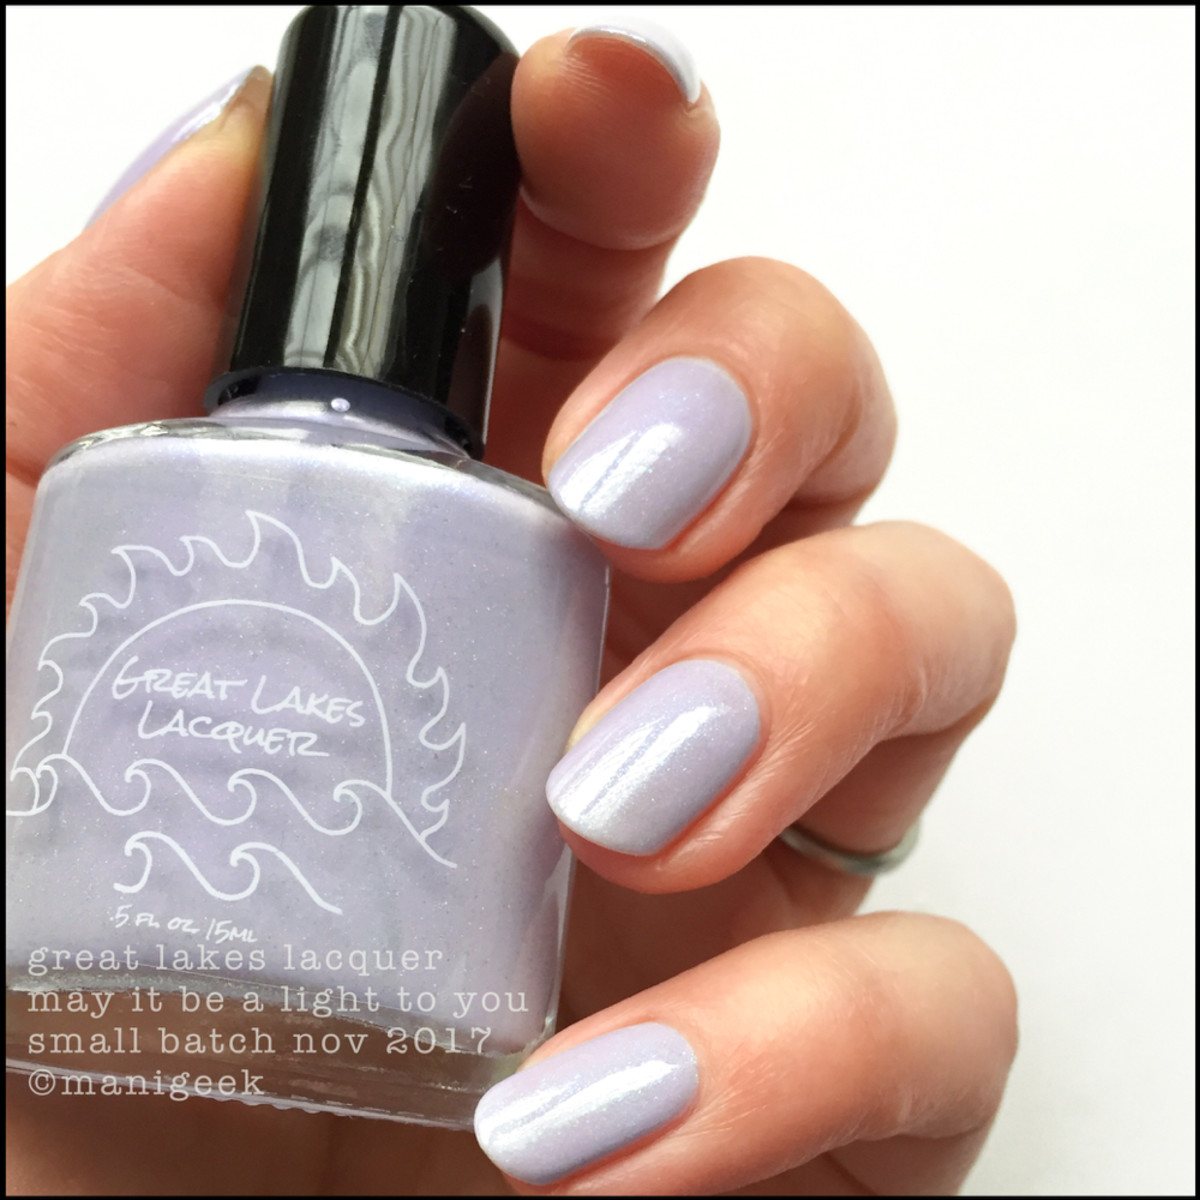 Great Lakes Lacquer May it be a Light To You 1 _ Great Lakes Lacquer Holiday 2017